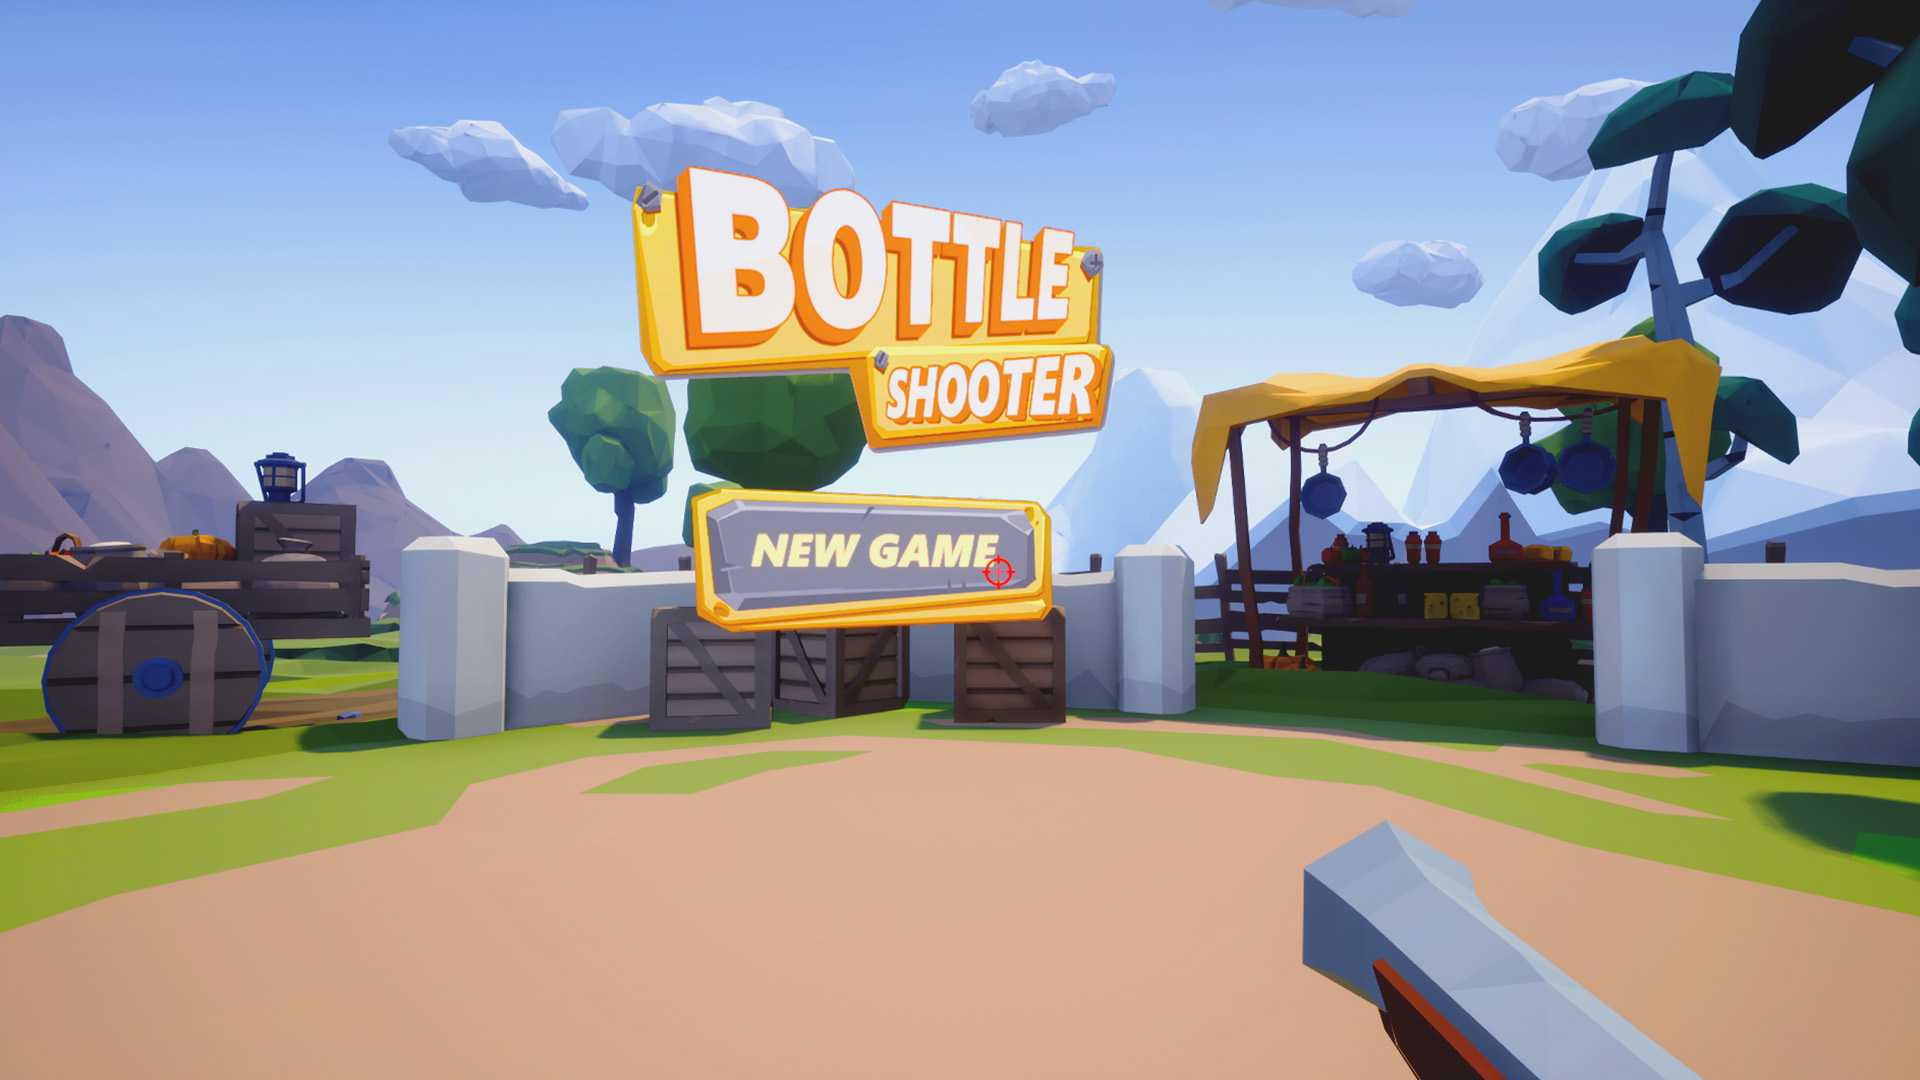 Bottle_Shooter